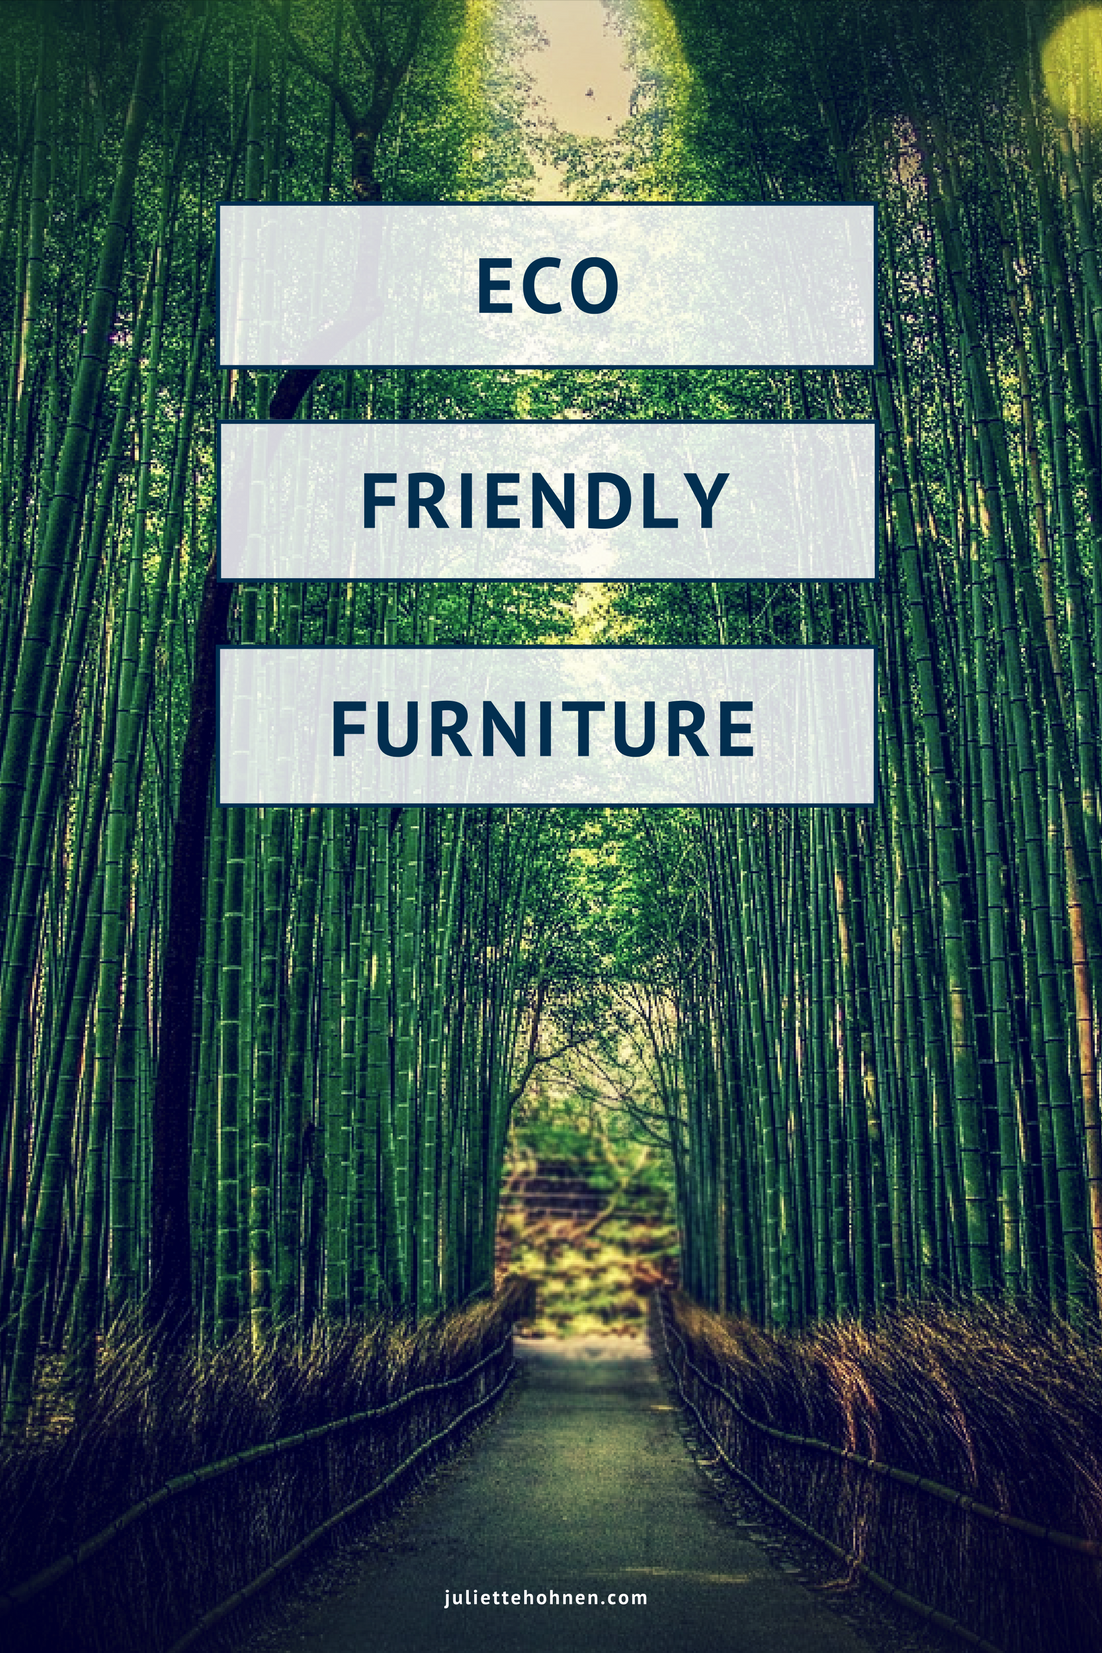 Eco Friendly Furniture - Juliette Hohnen